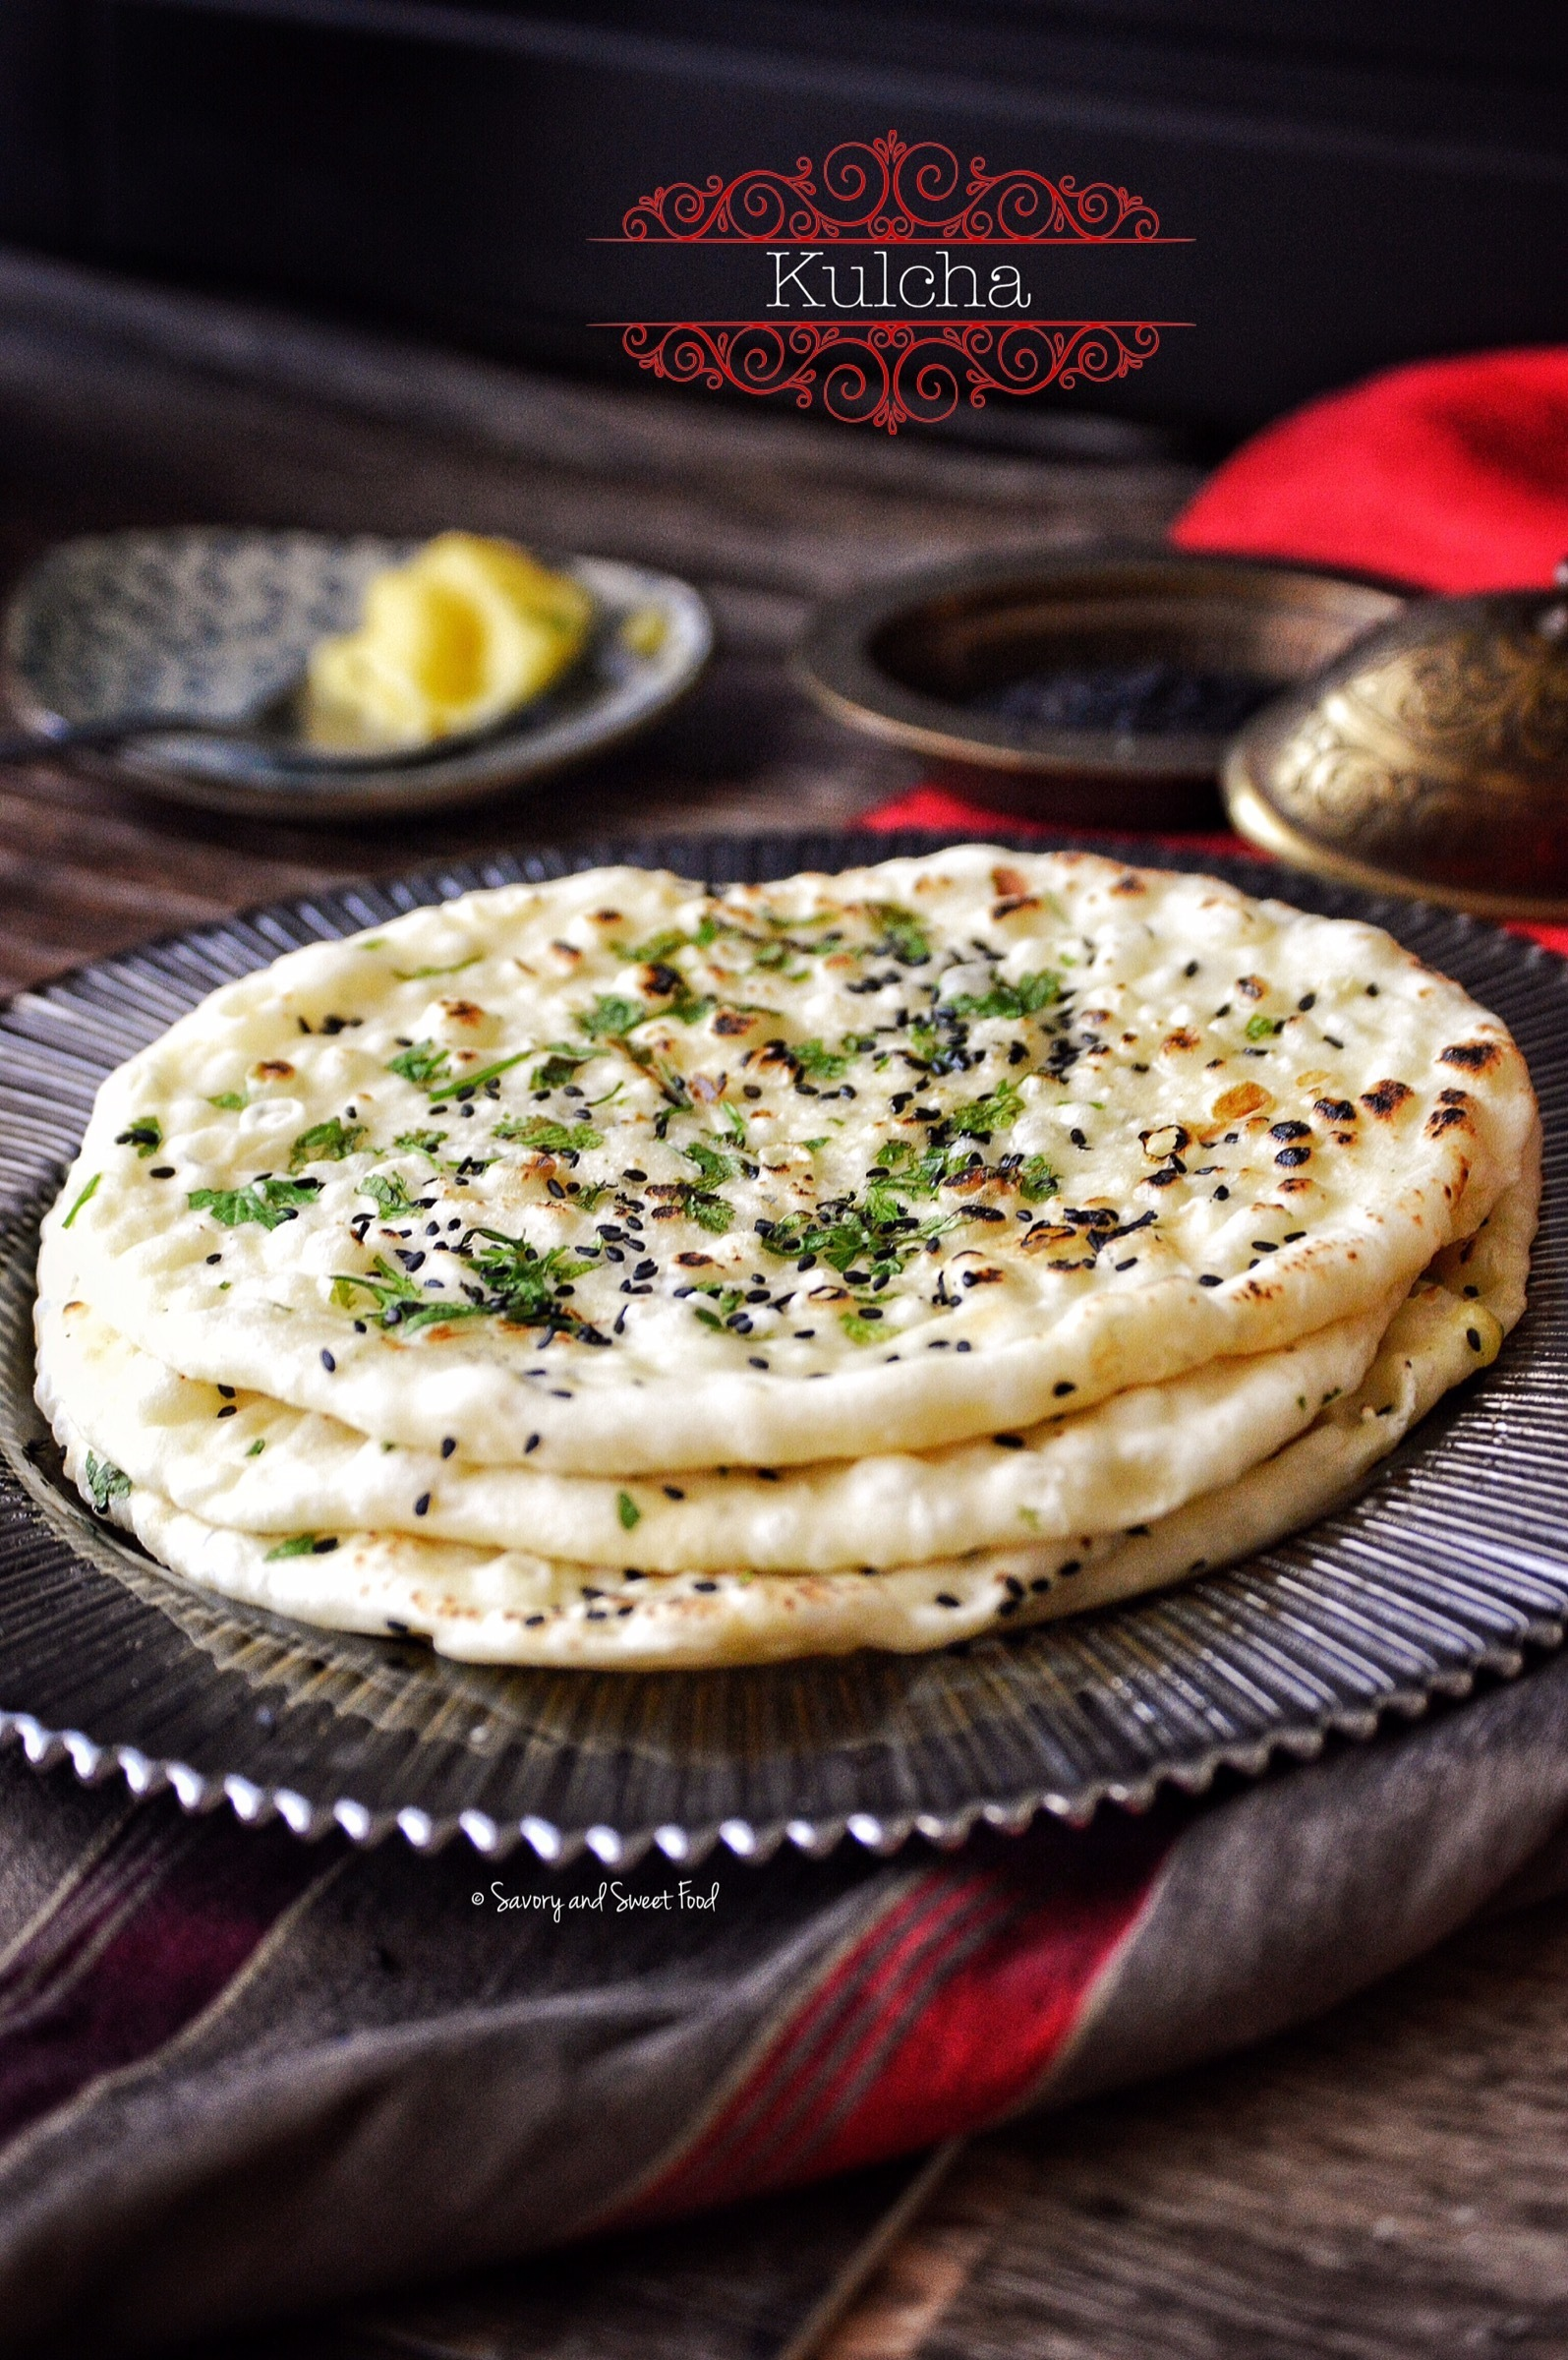 Kulcha/ Indian Flat Bread